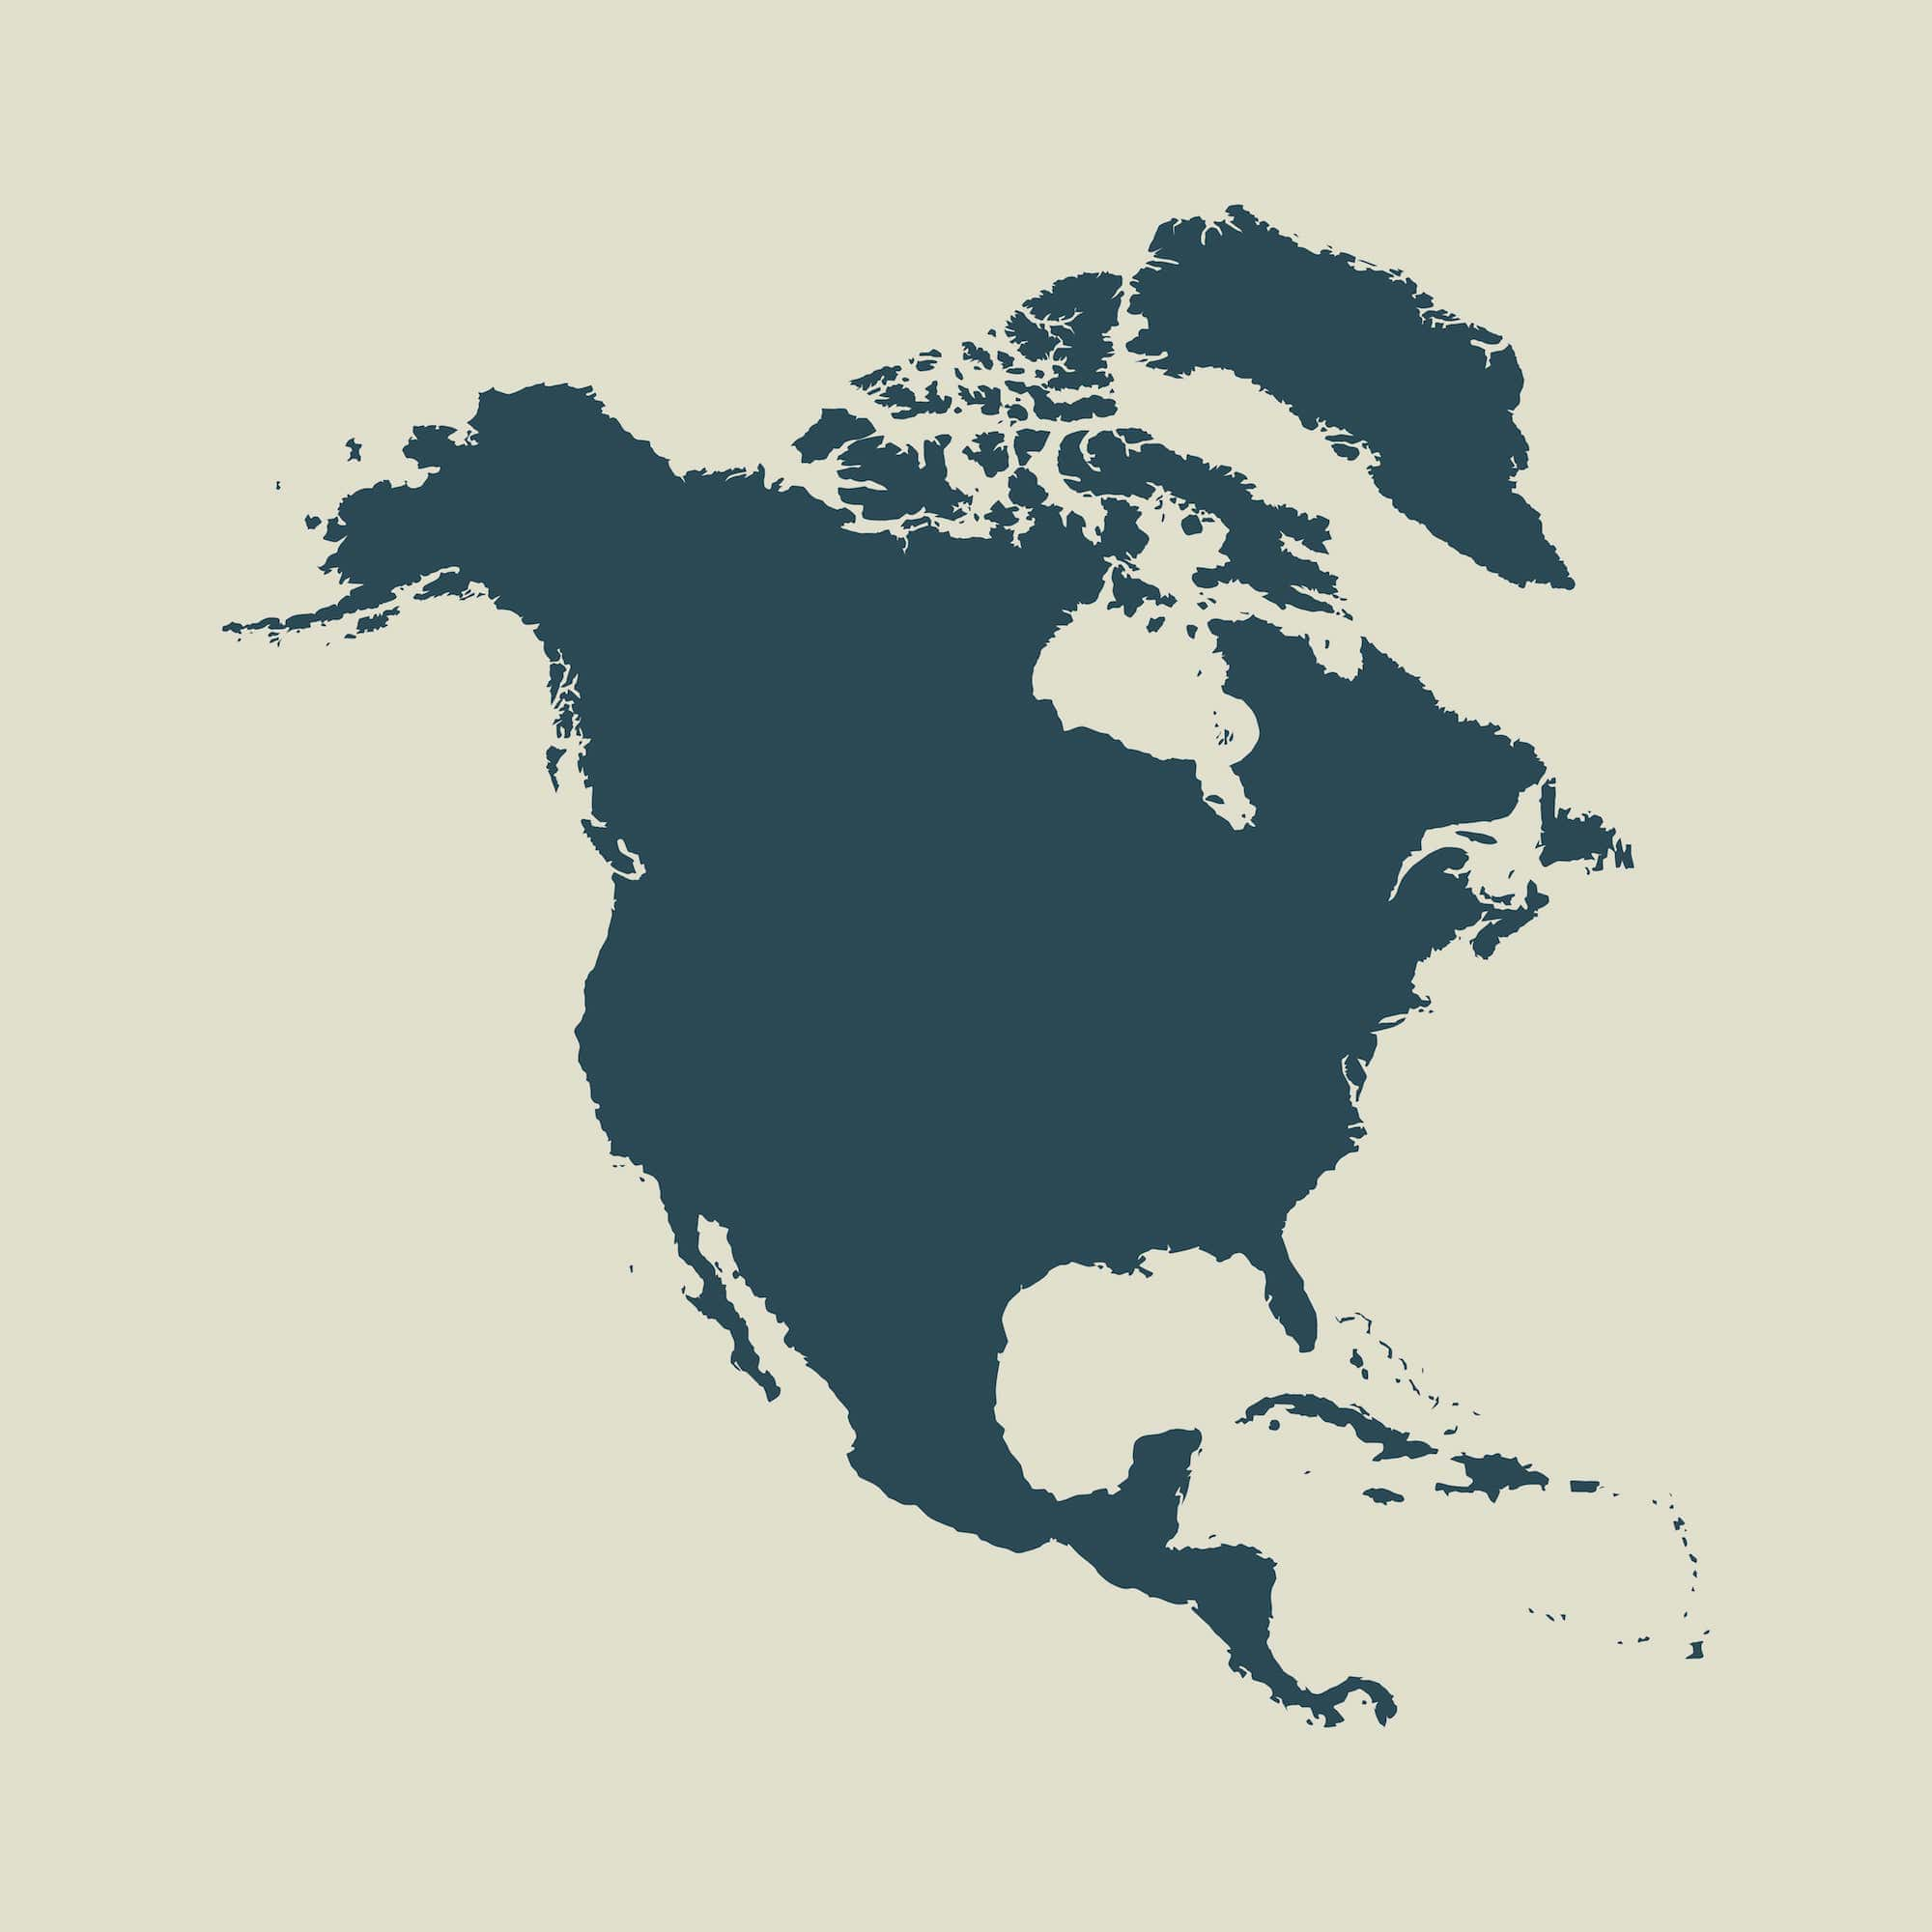 Outline map of North America. Isolated vector illustration